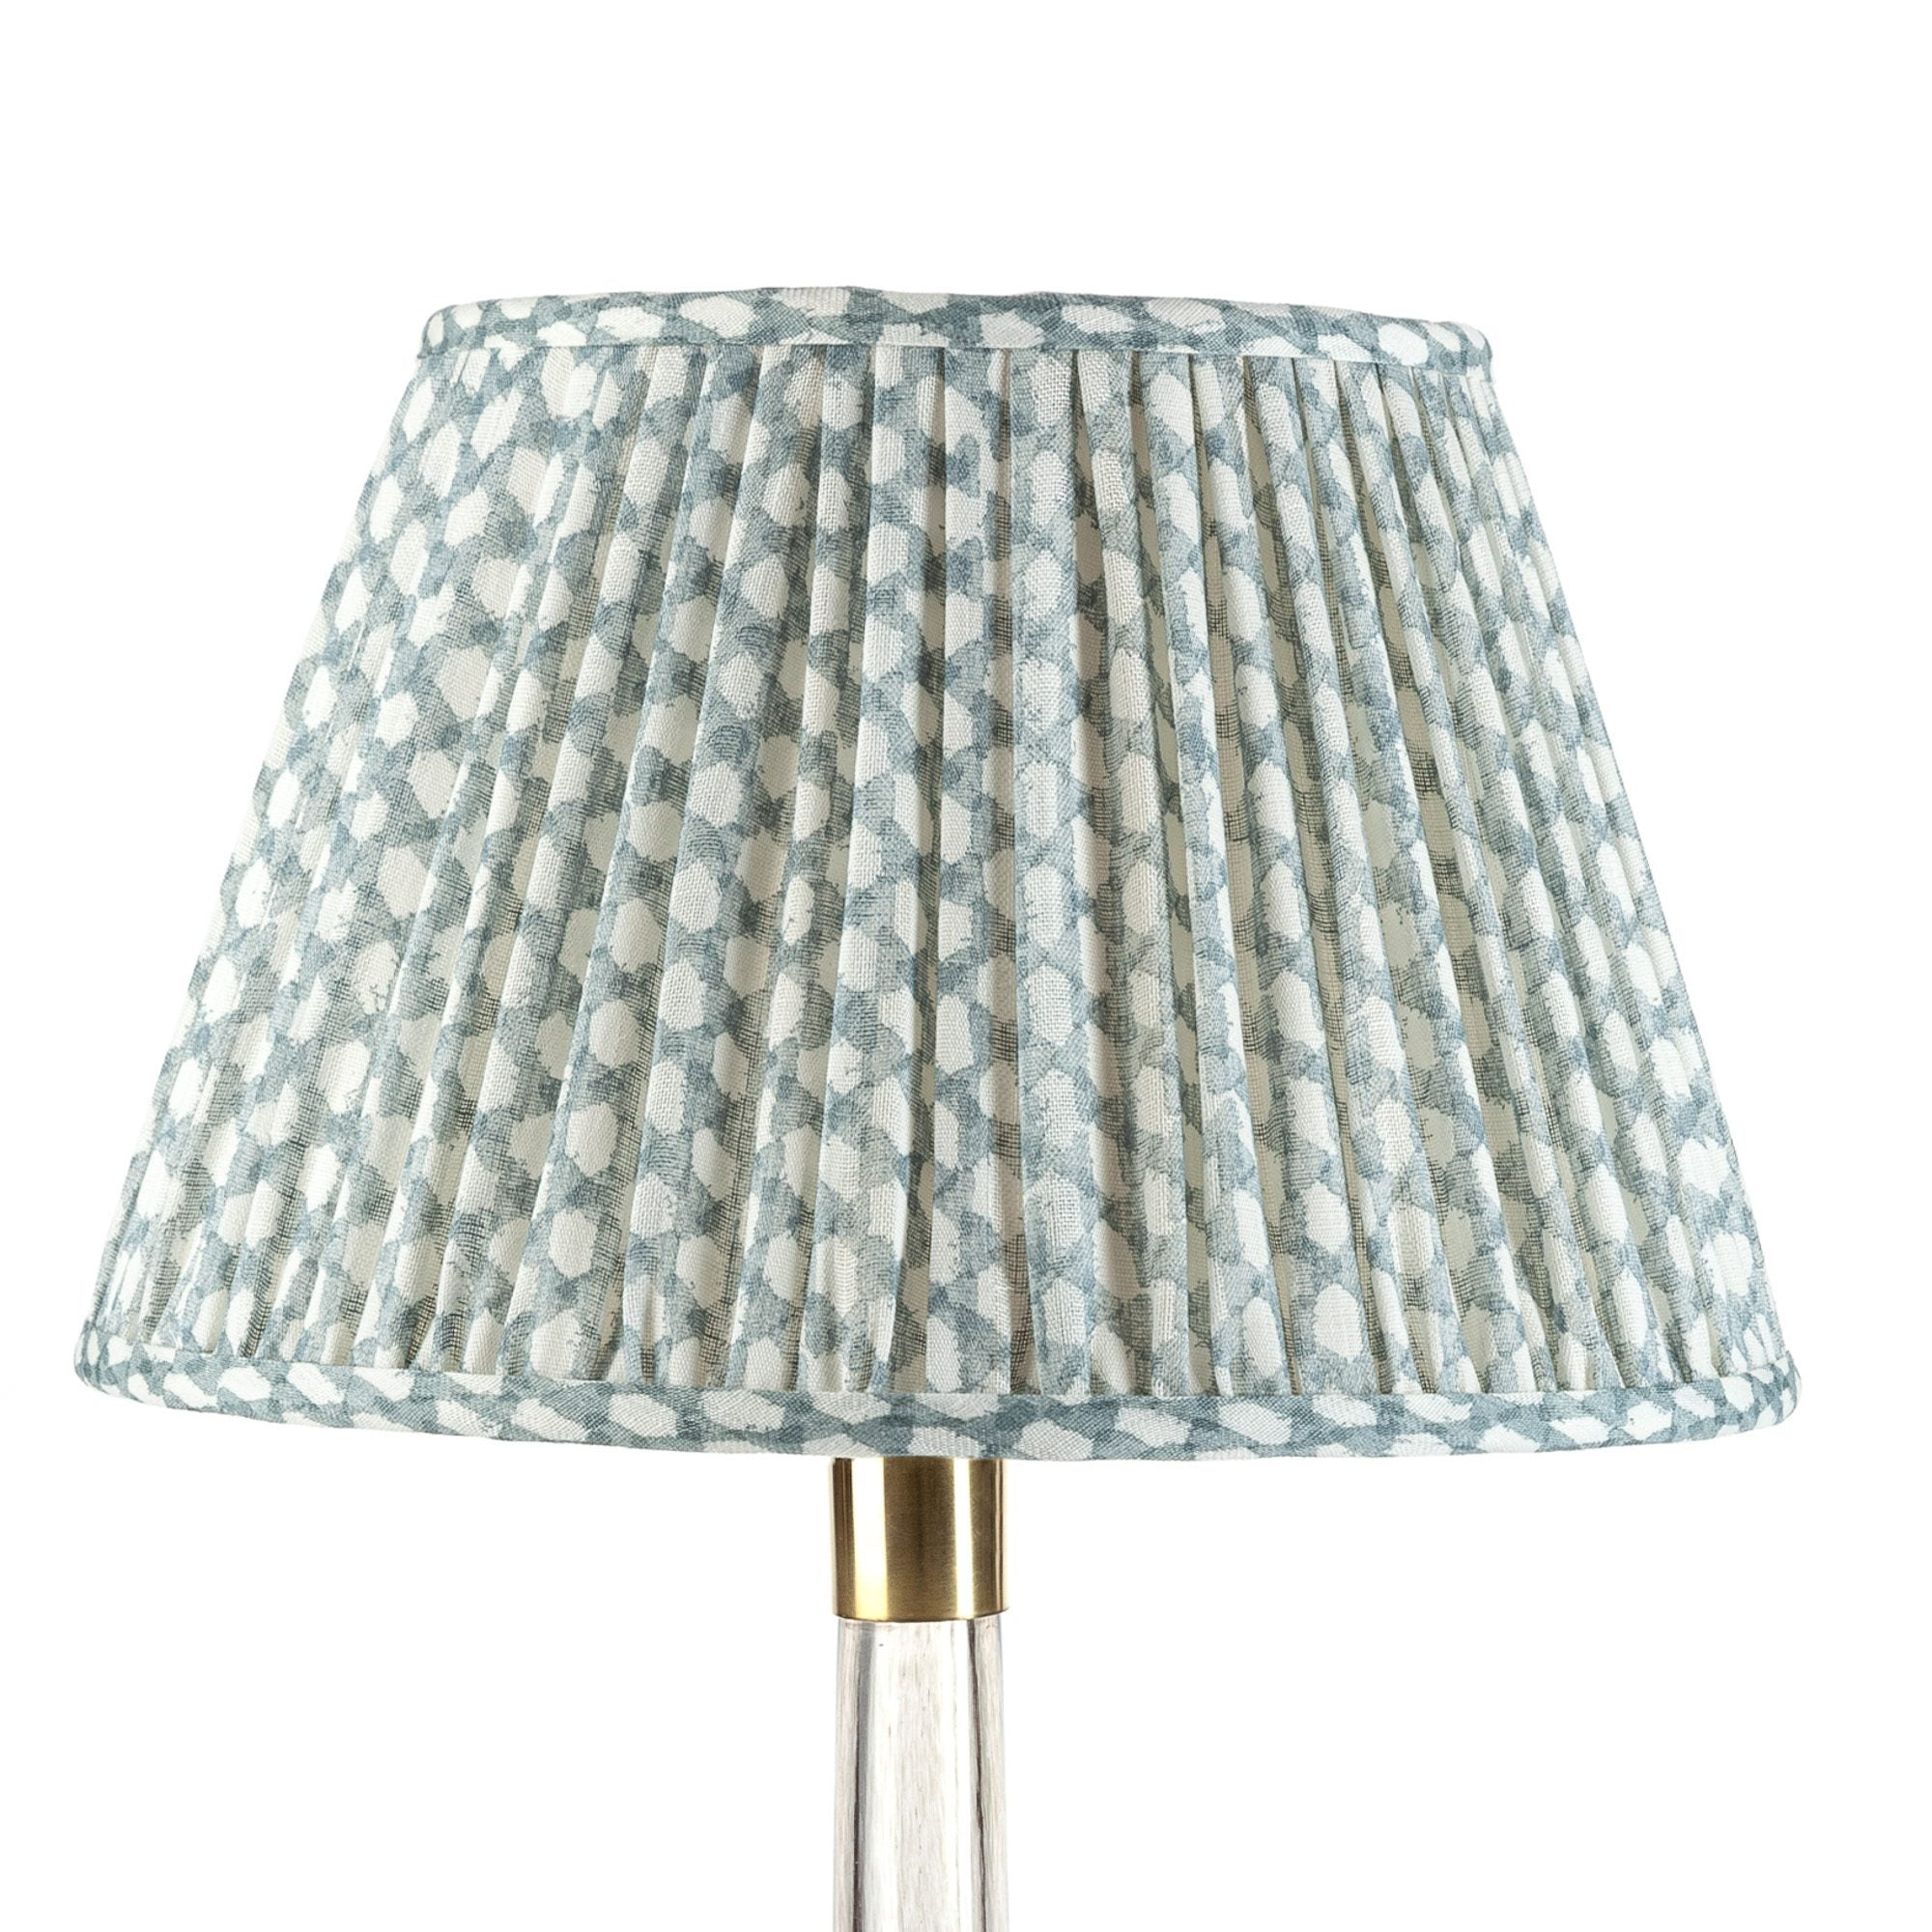 Fermoie Lampshade in Light Blue Wicker